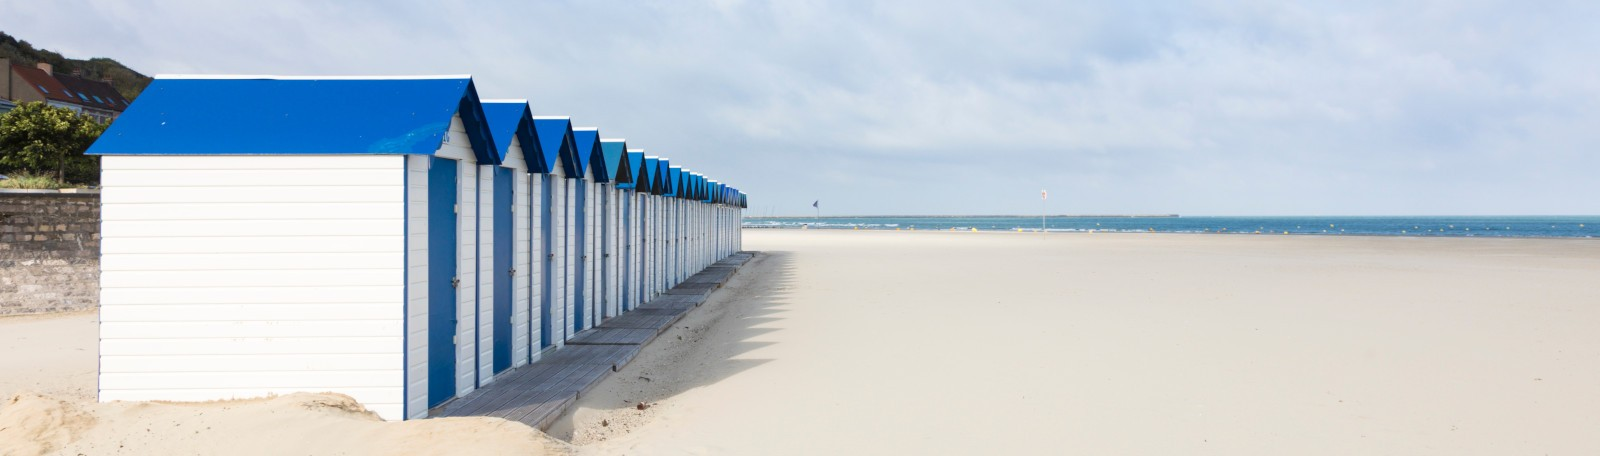 Parking La Plage - Park in Boulogne sur Mer | Q-Park